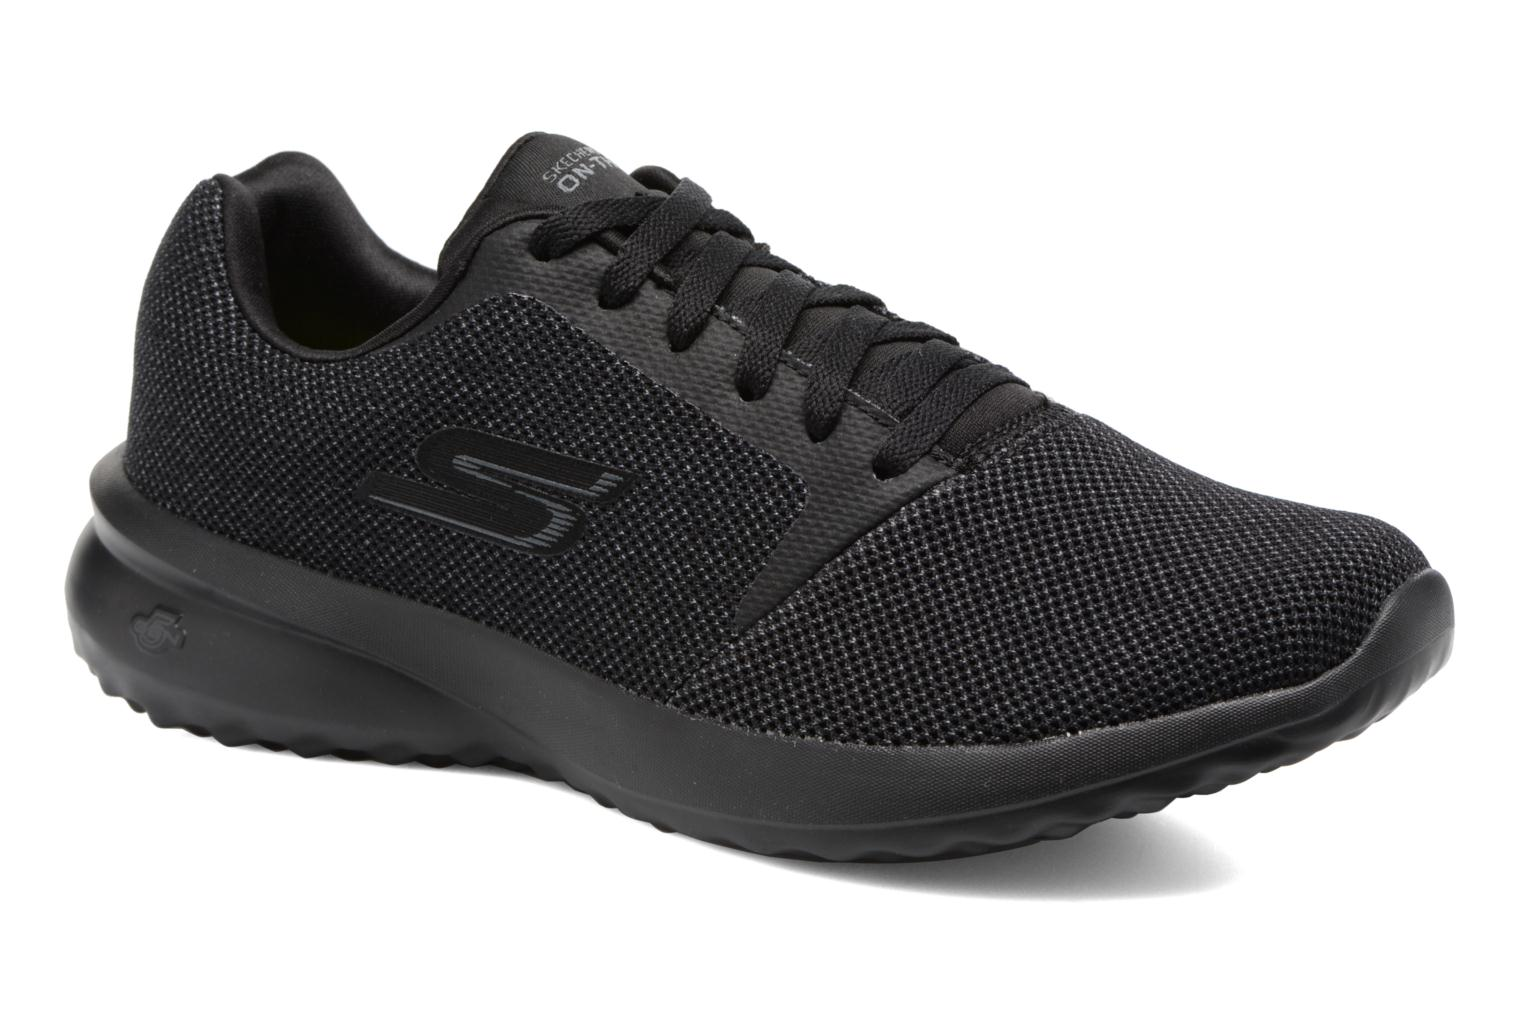 Zapatillas de deporte Skechers On-the-go City 3.0 Negro vista de detalle / par